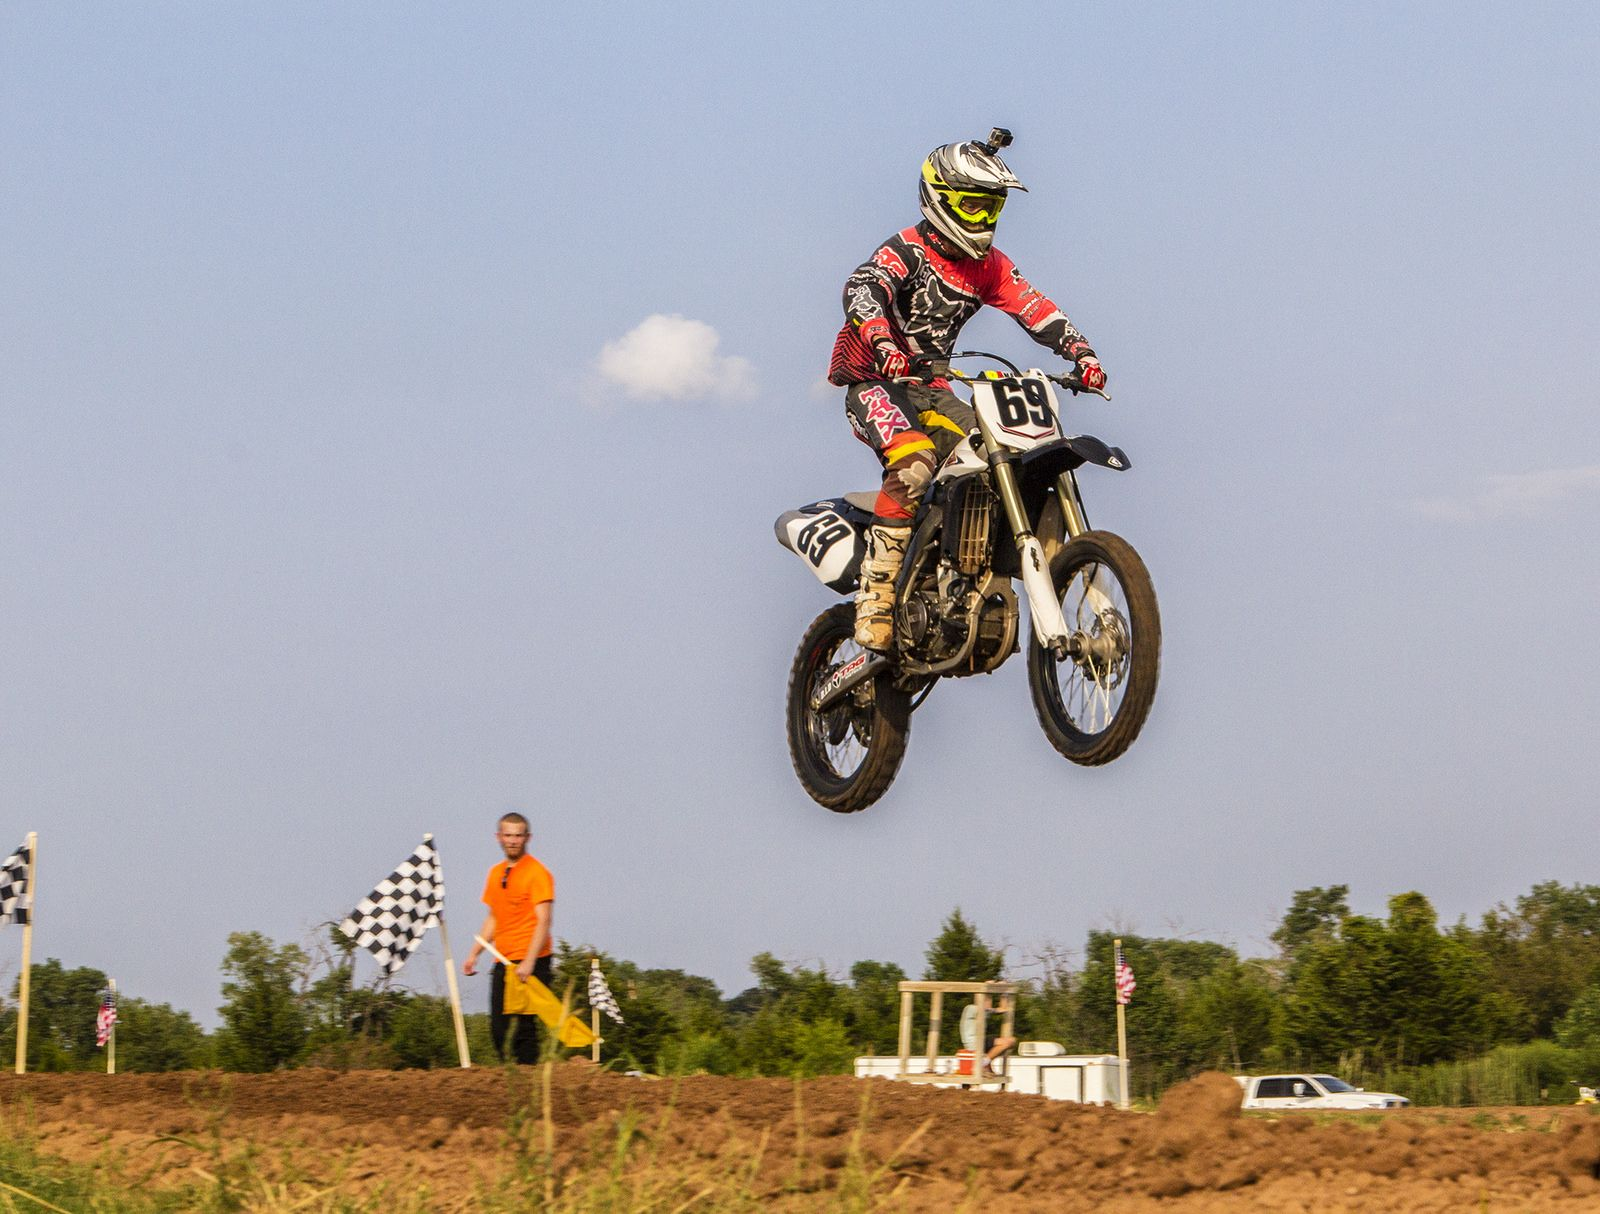 https://flic.kr/p/xGwTBQ | Clearing the Jump | Motocross racing at the Oklahoma Motorsports Complex in Norman, Oklahoma.